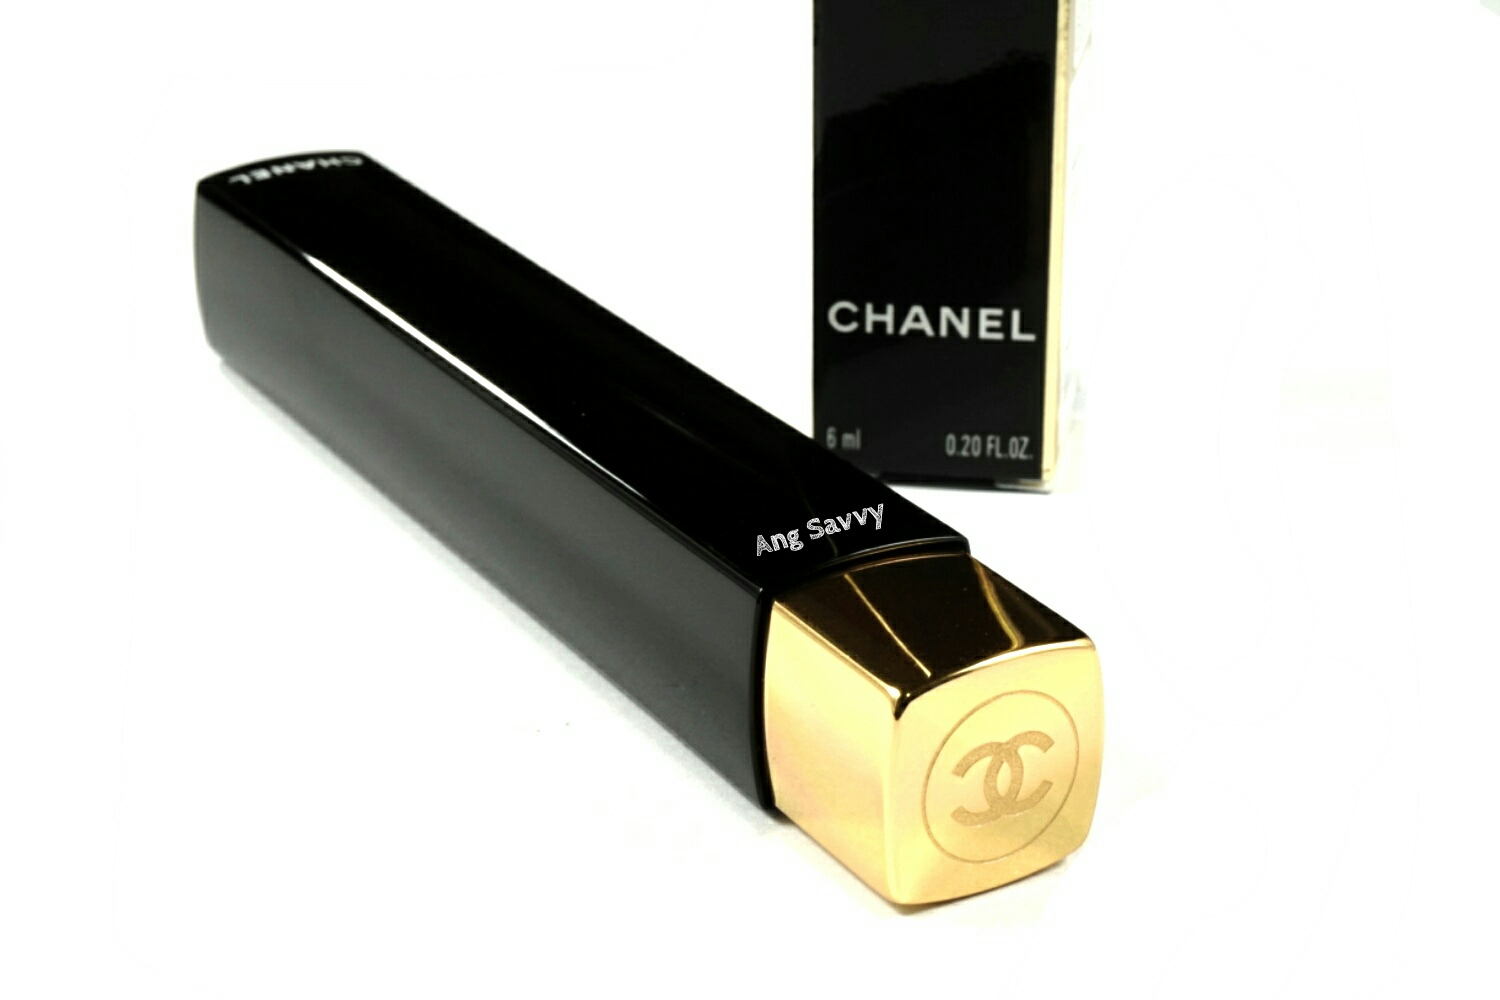 Chanel Rouge Allure Gloss 18 Seduction